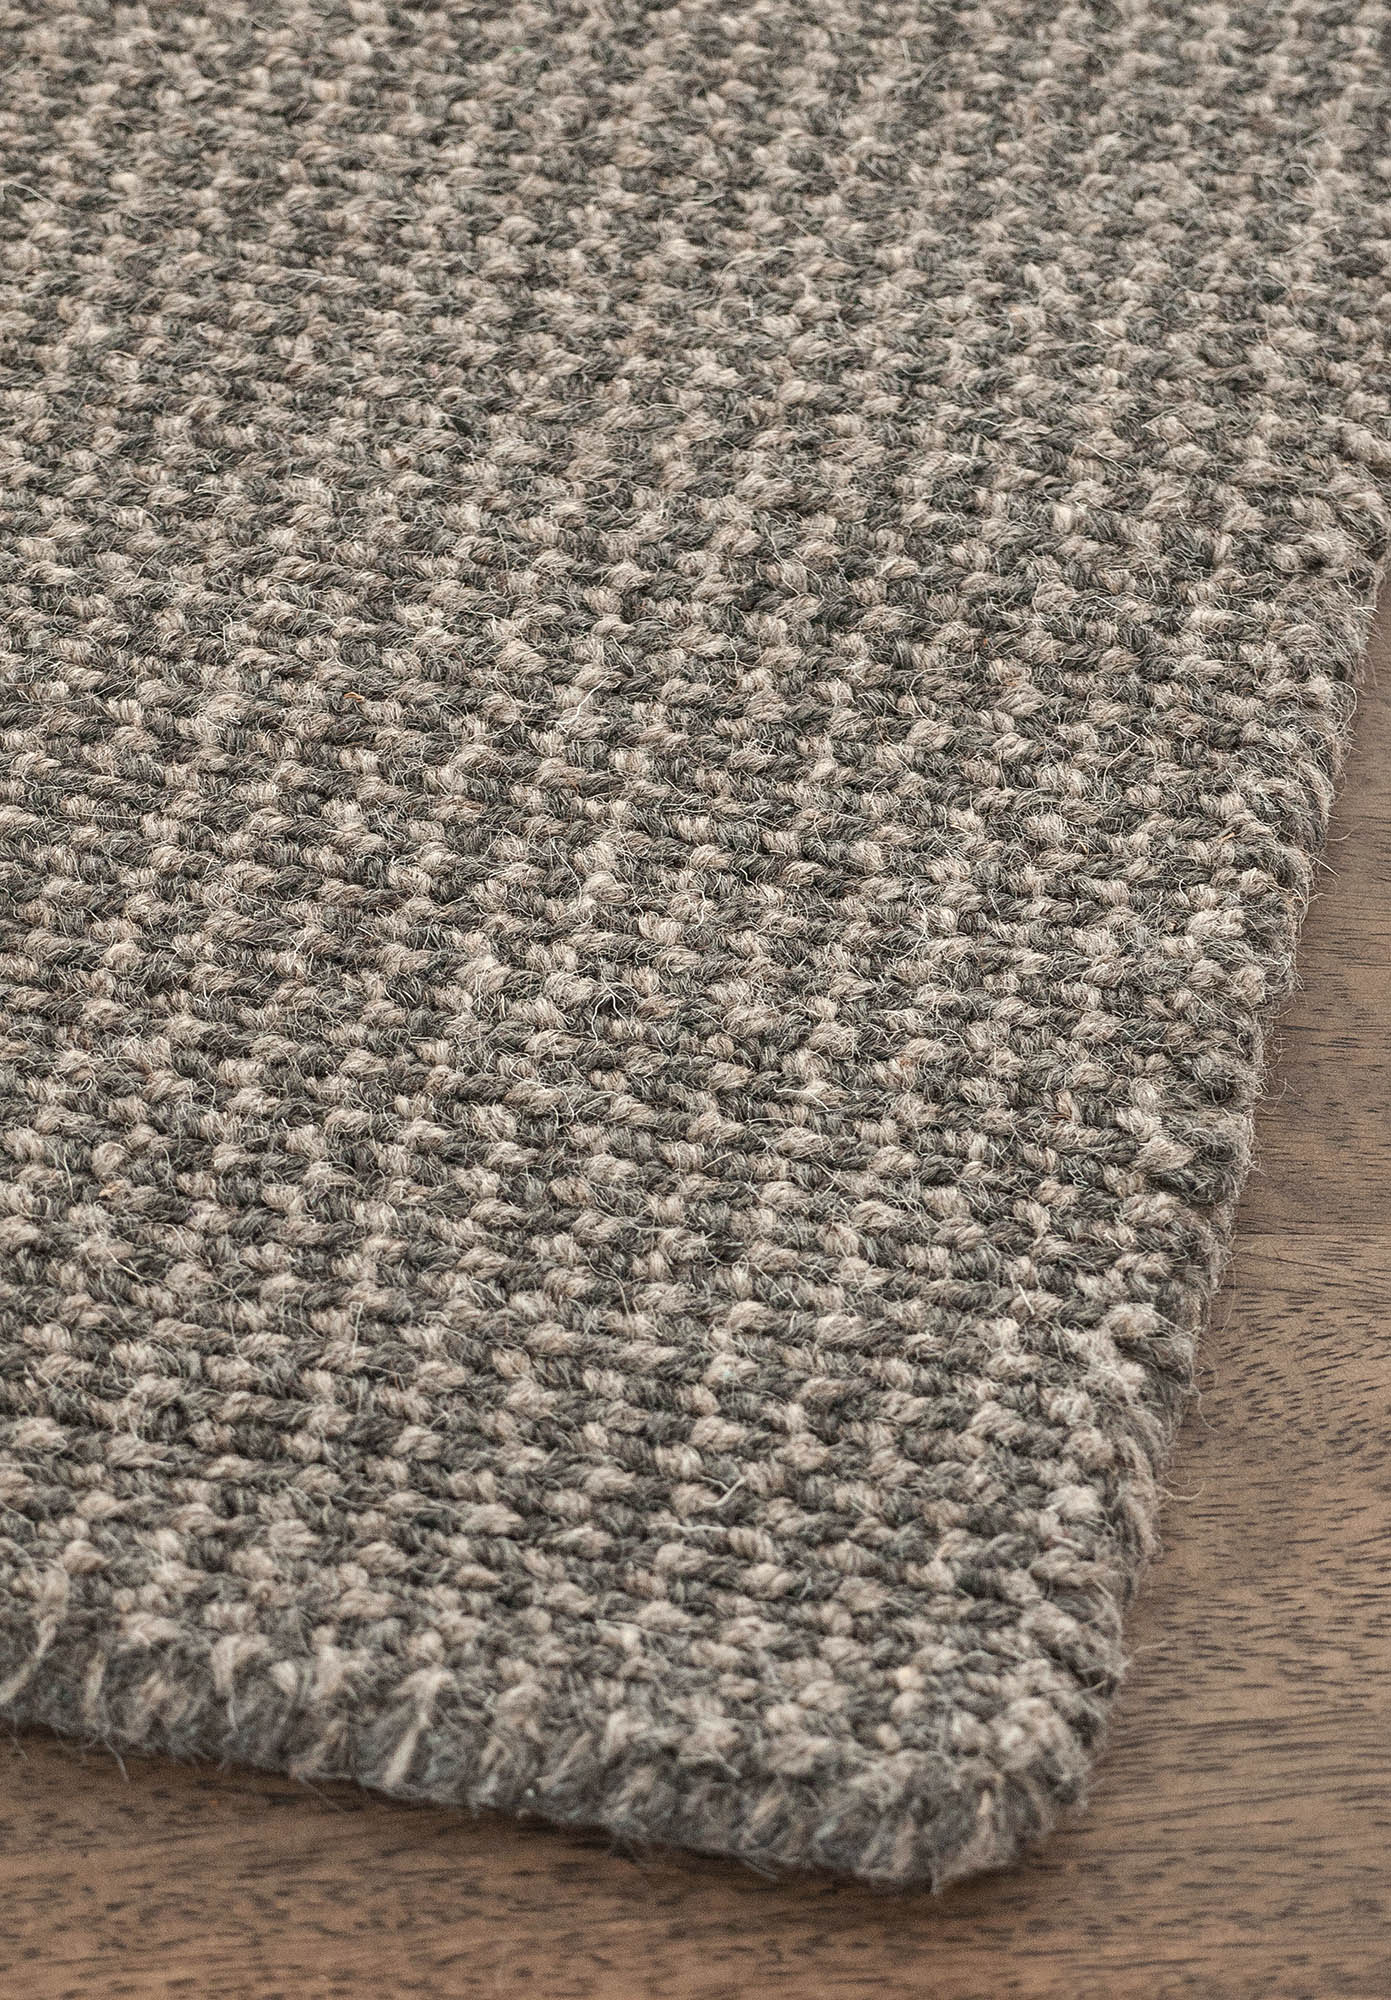 Crossweave Natural Wool Grey Loom Hooked Rug